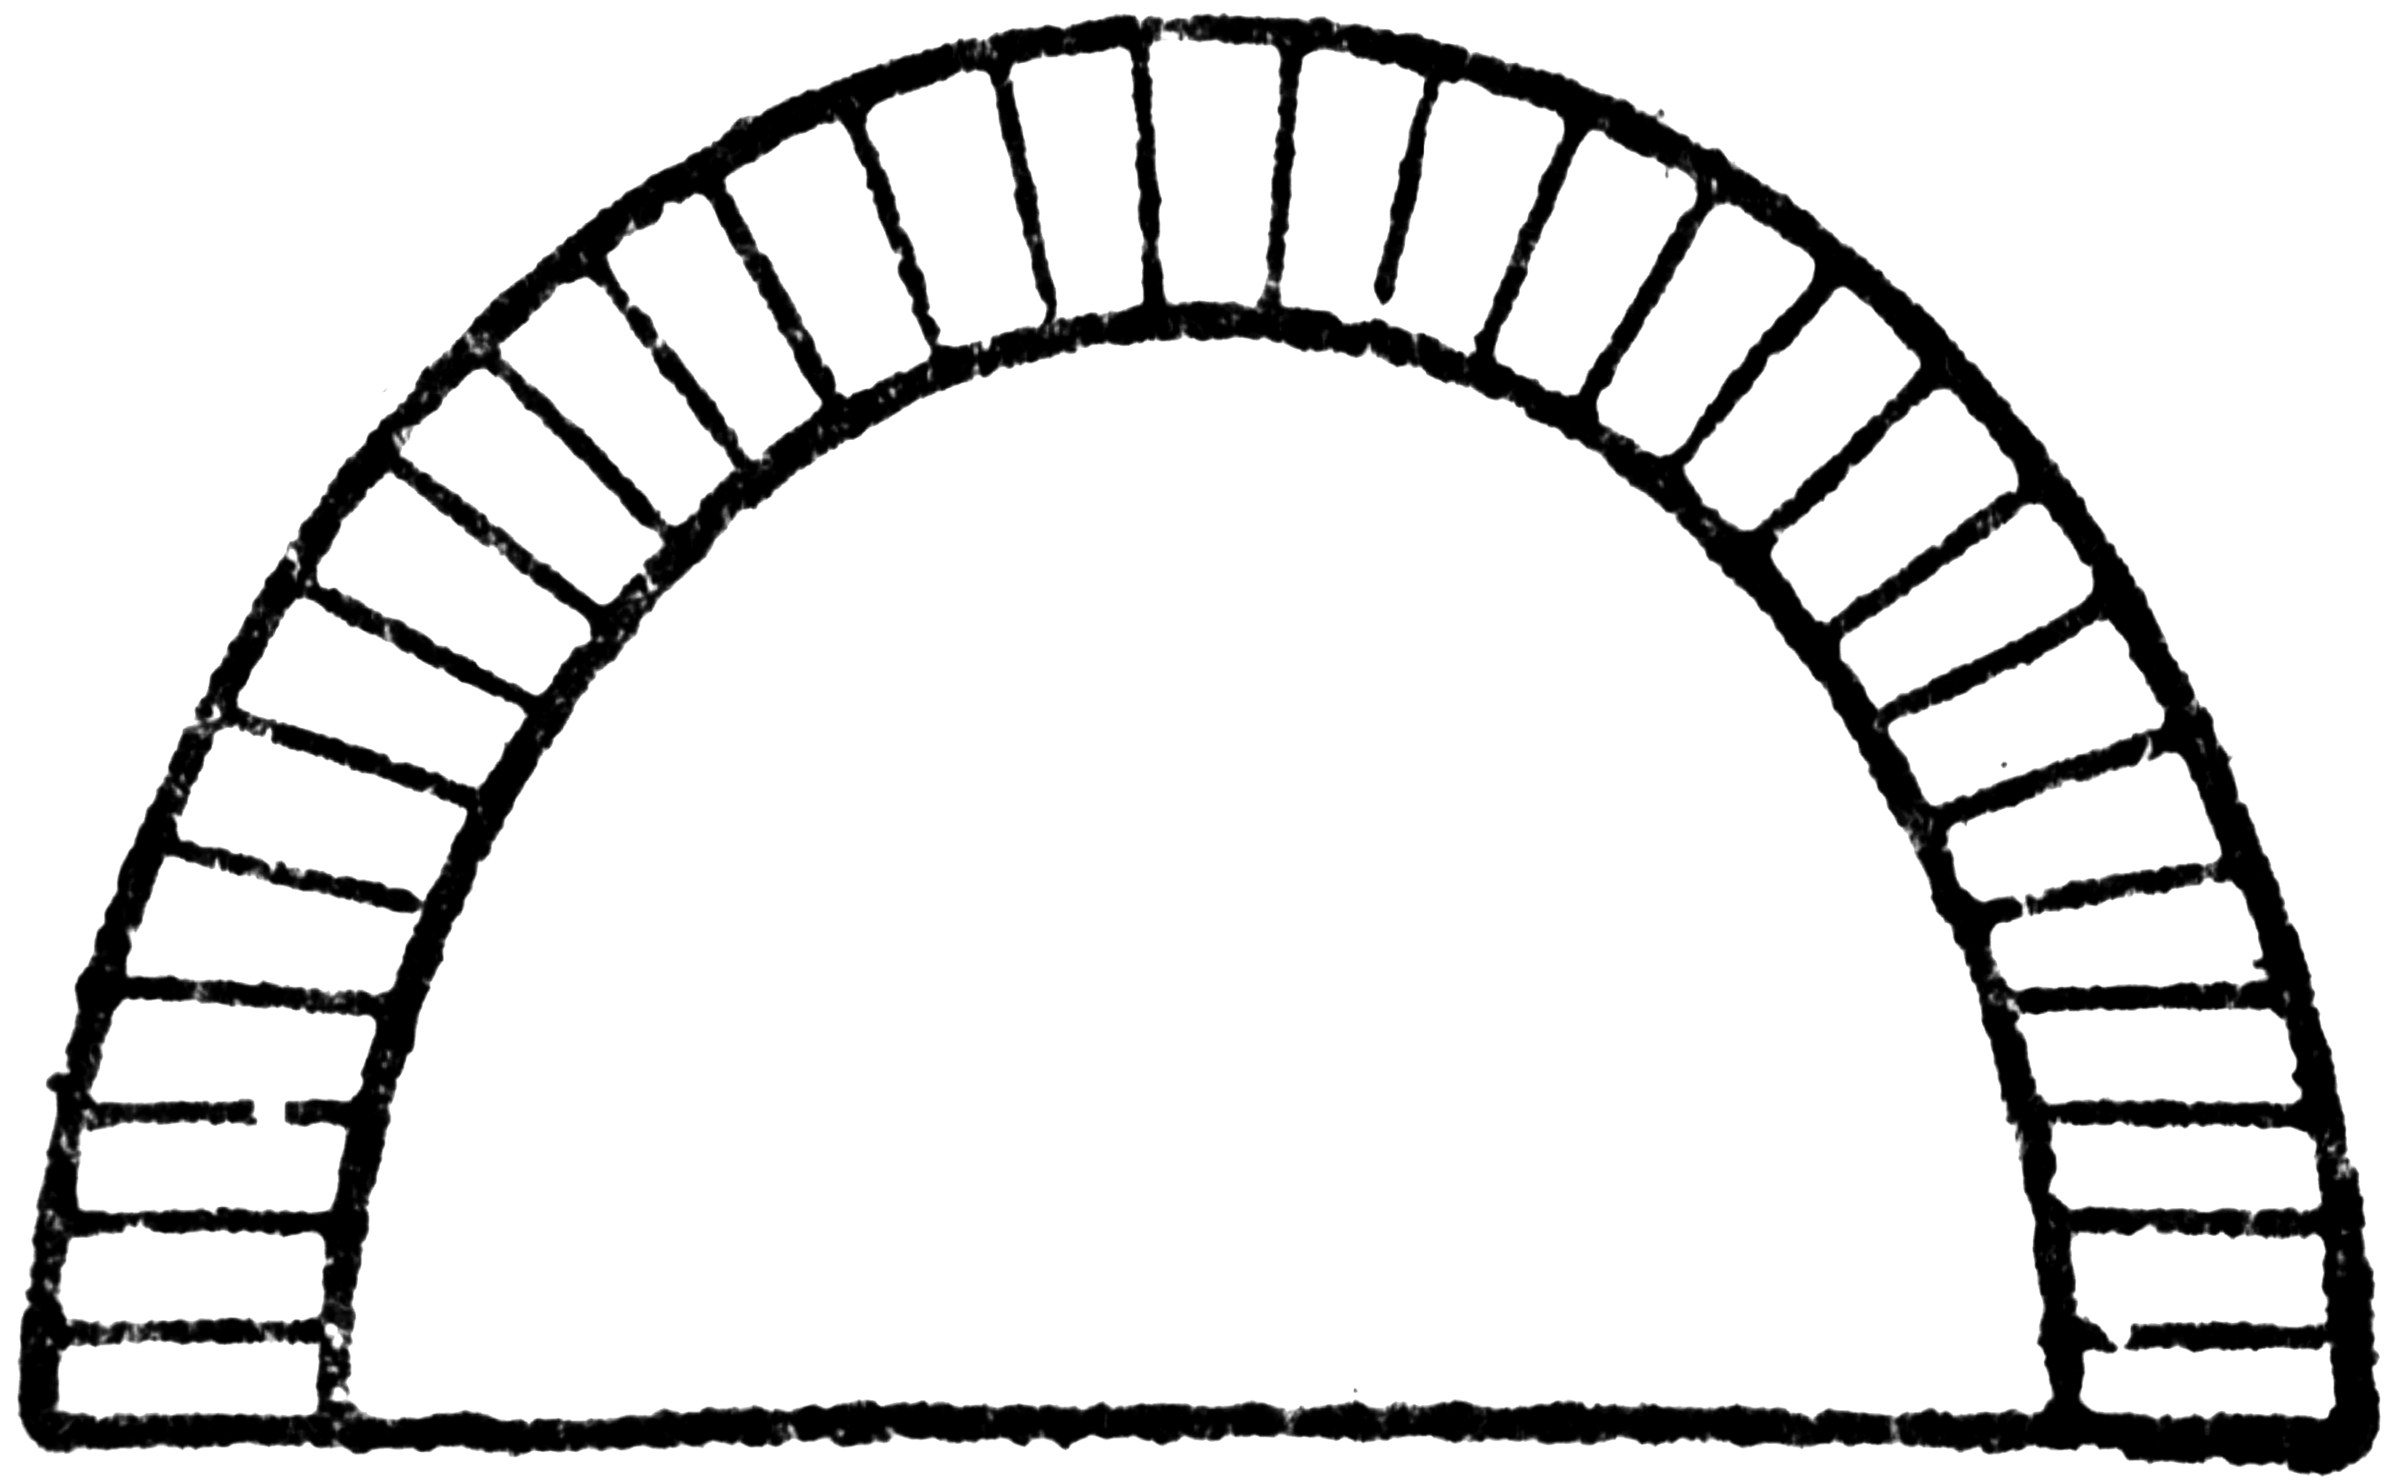 Elliptical Arch Clipart Etc